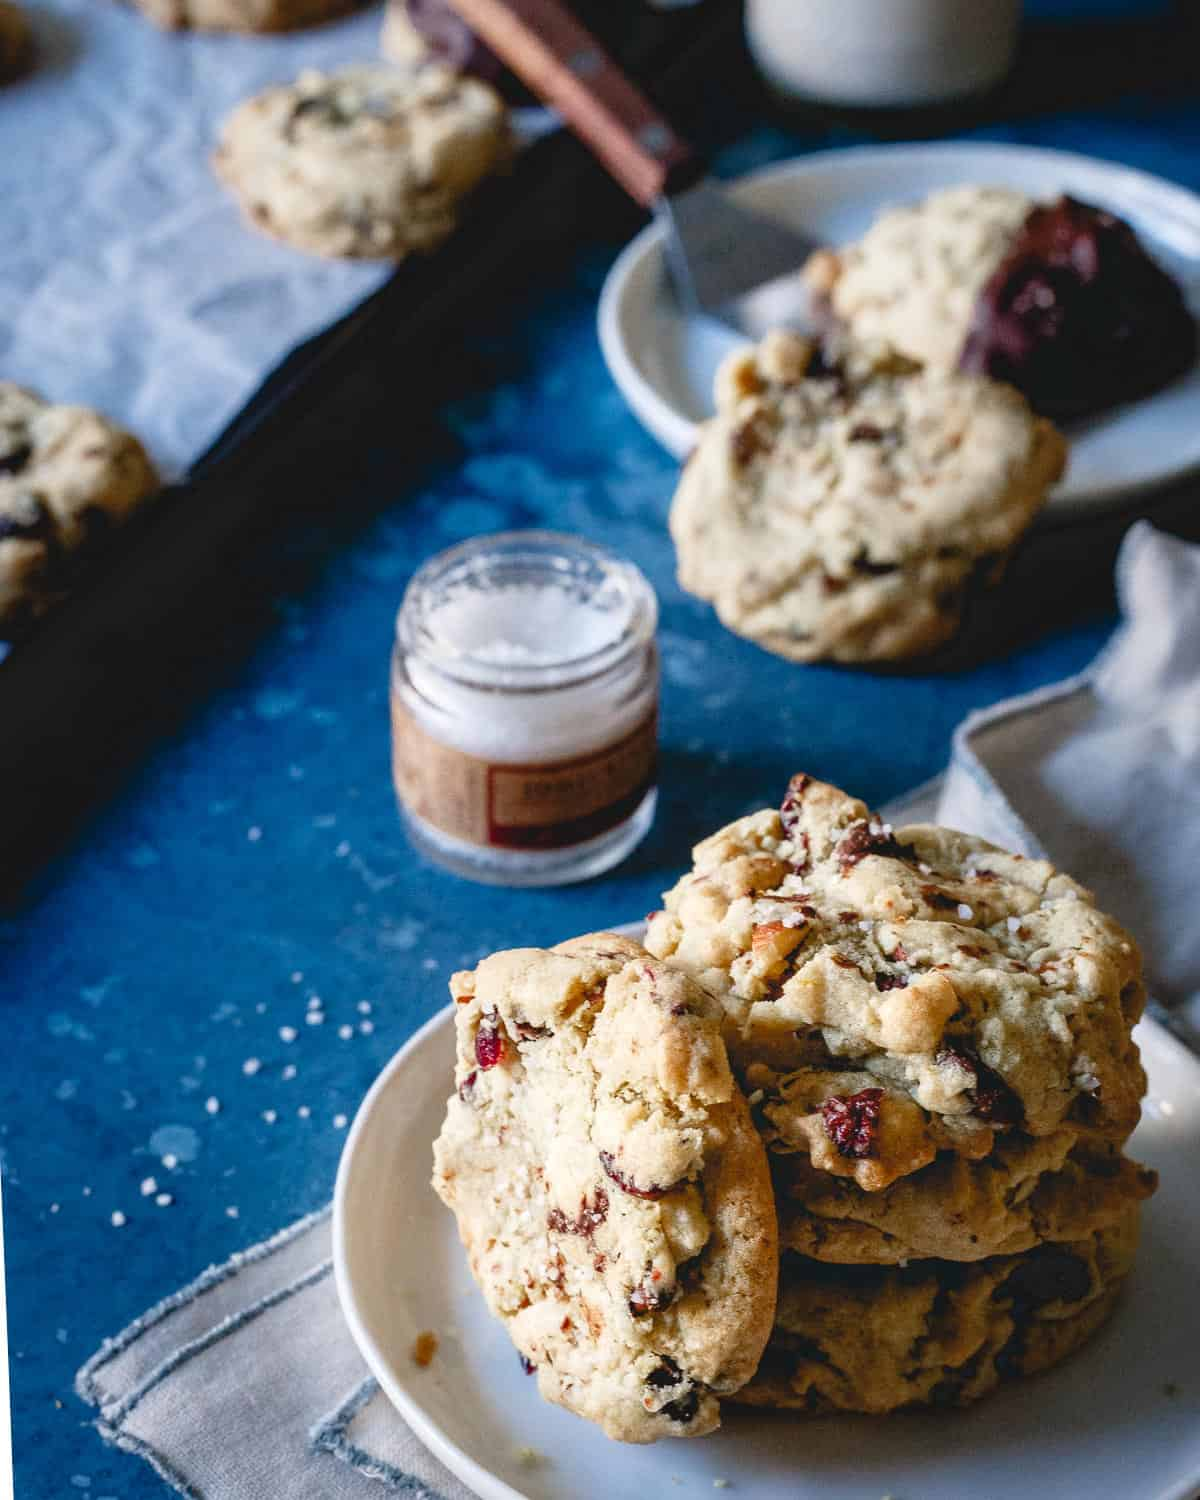 A glass of milk and a couple of these cranberry almond chocolate chip cookies is the perfect holiday inspired treat.